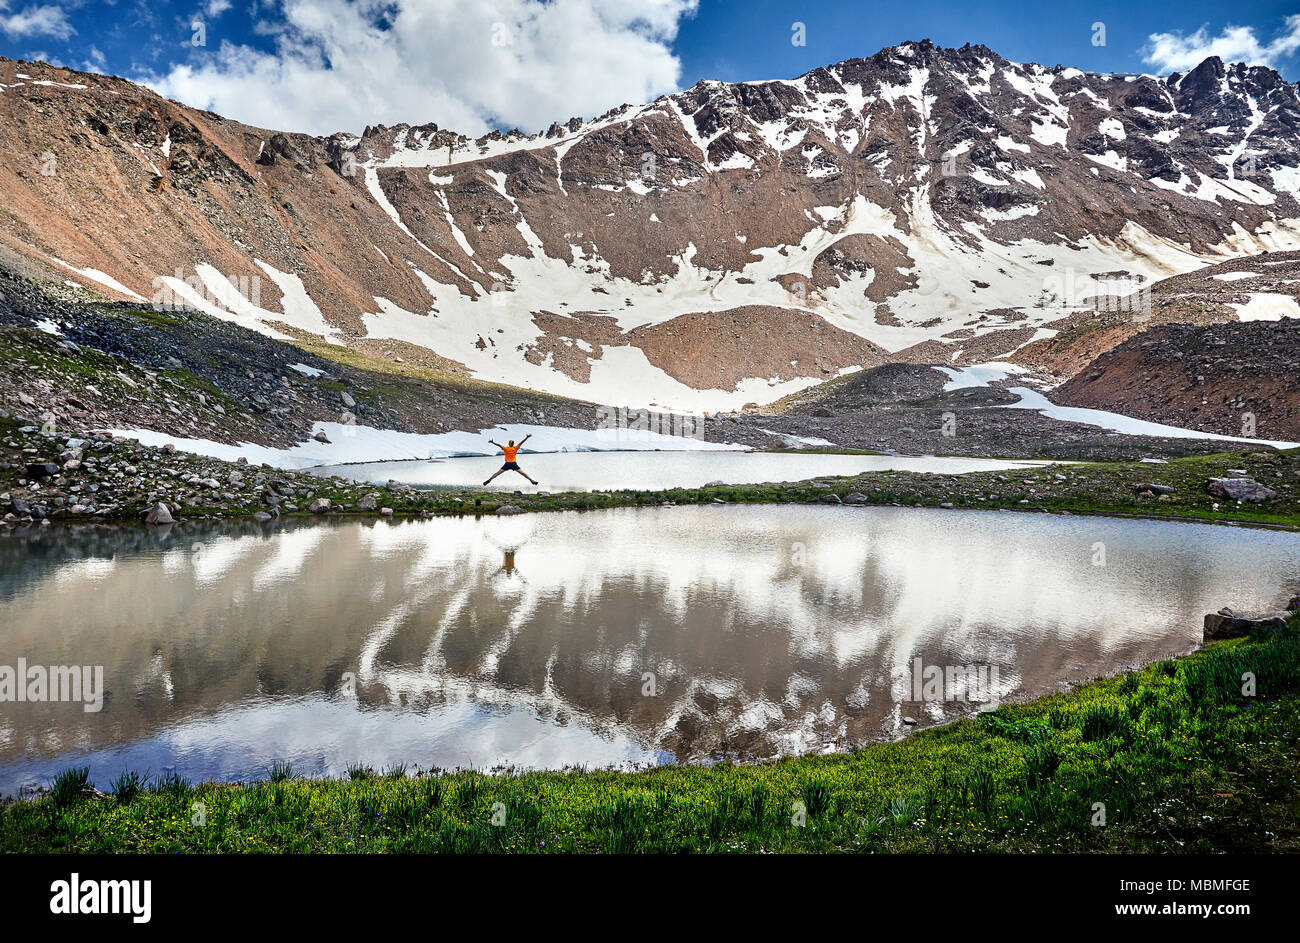 Hiker in orange shirt jumping with rise hand near lake in the snowy mountains - Stock Image